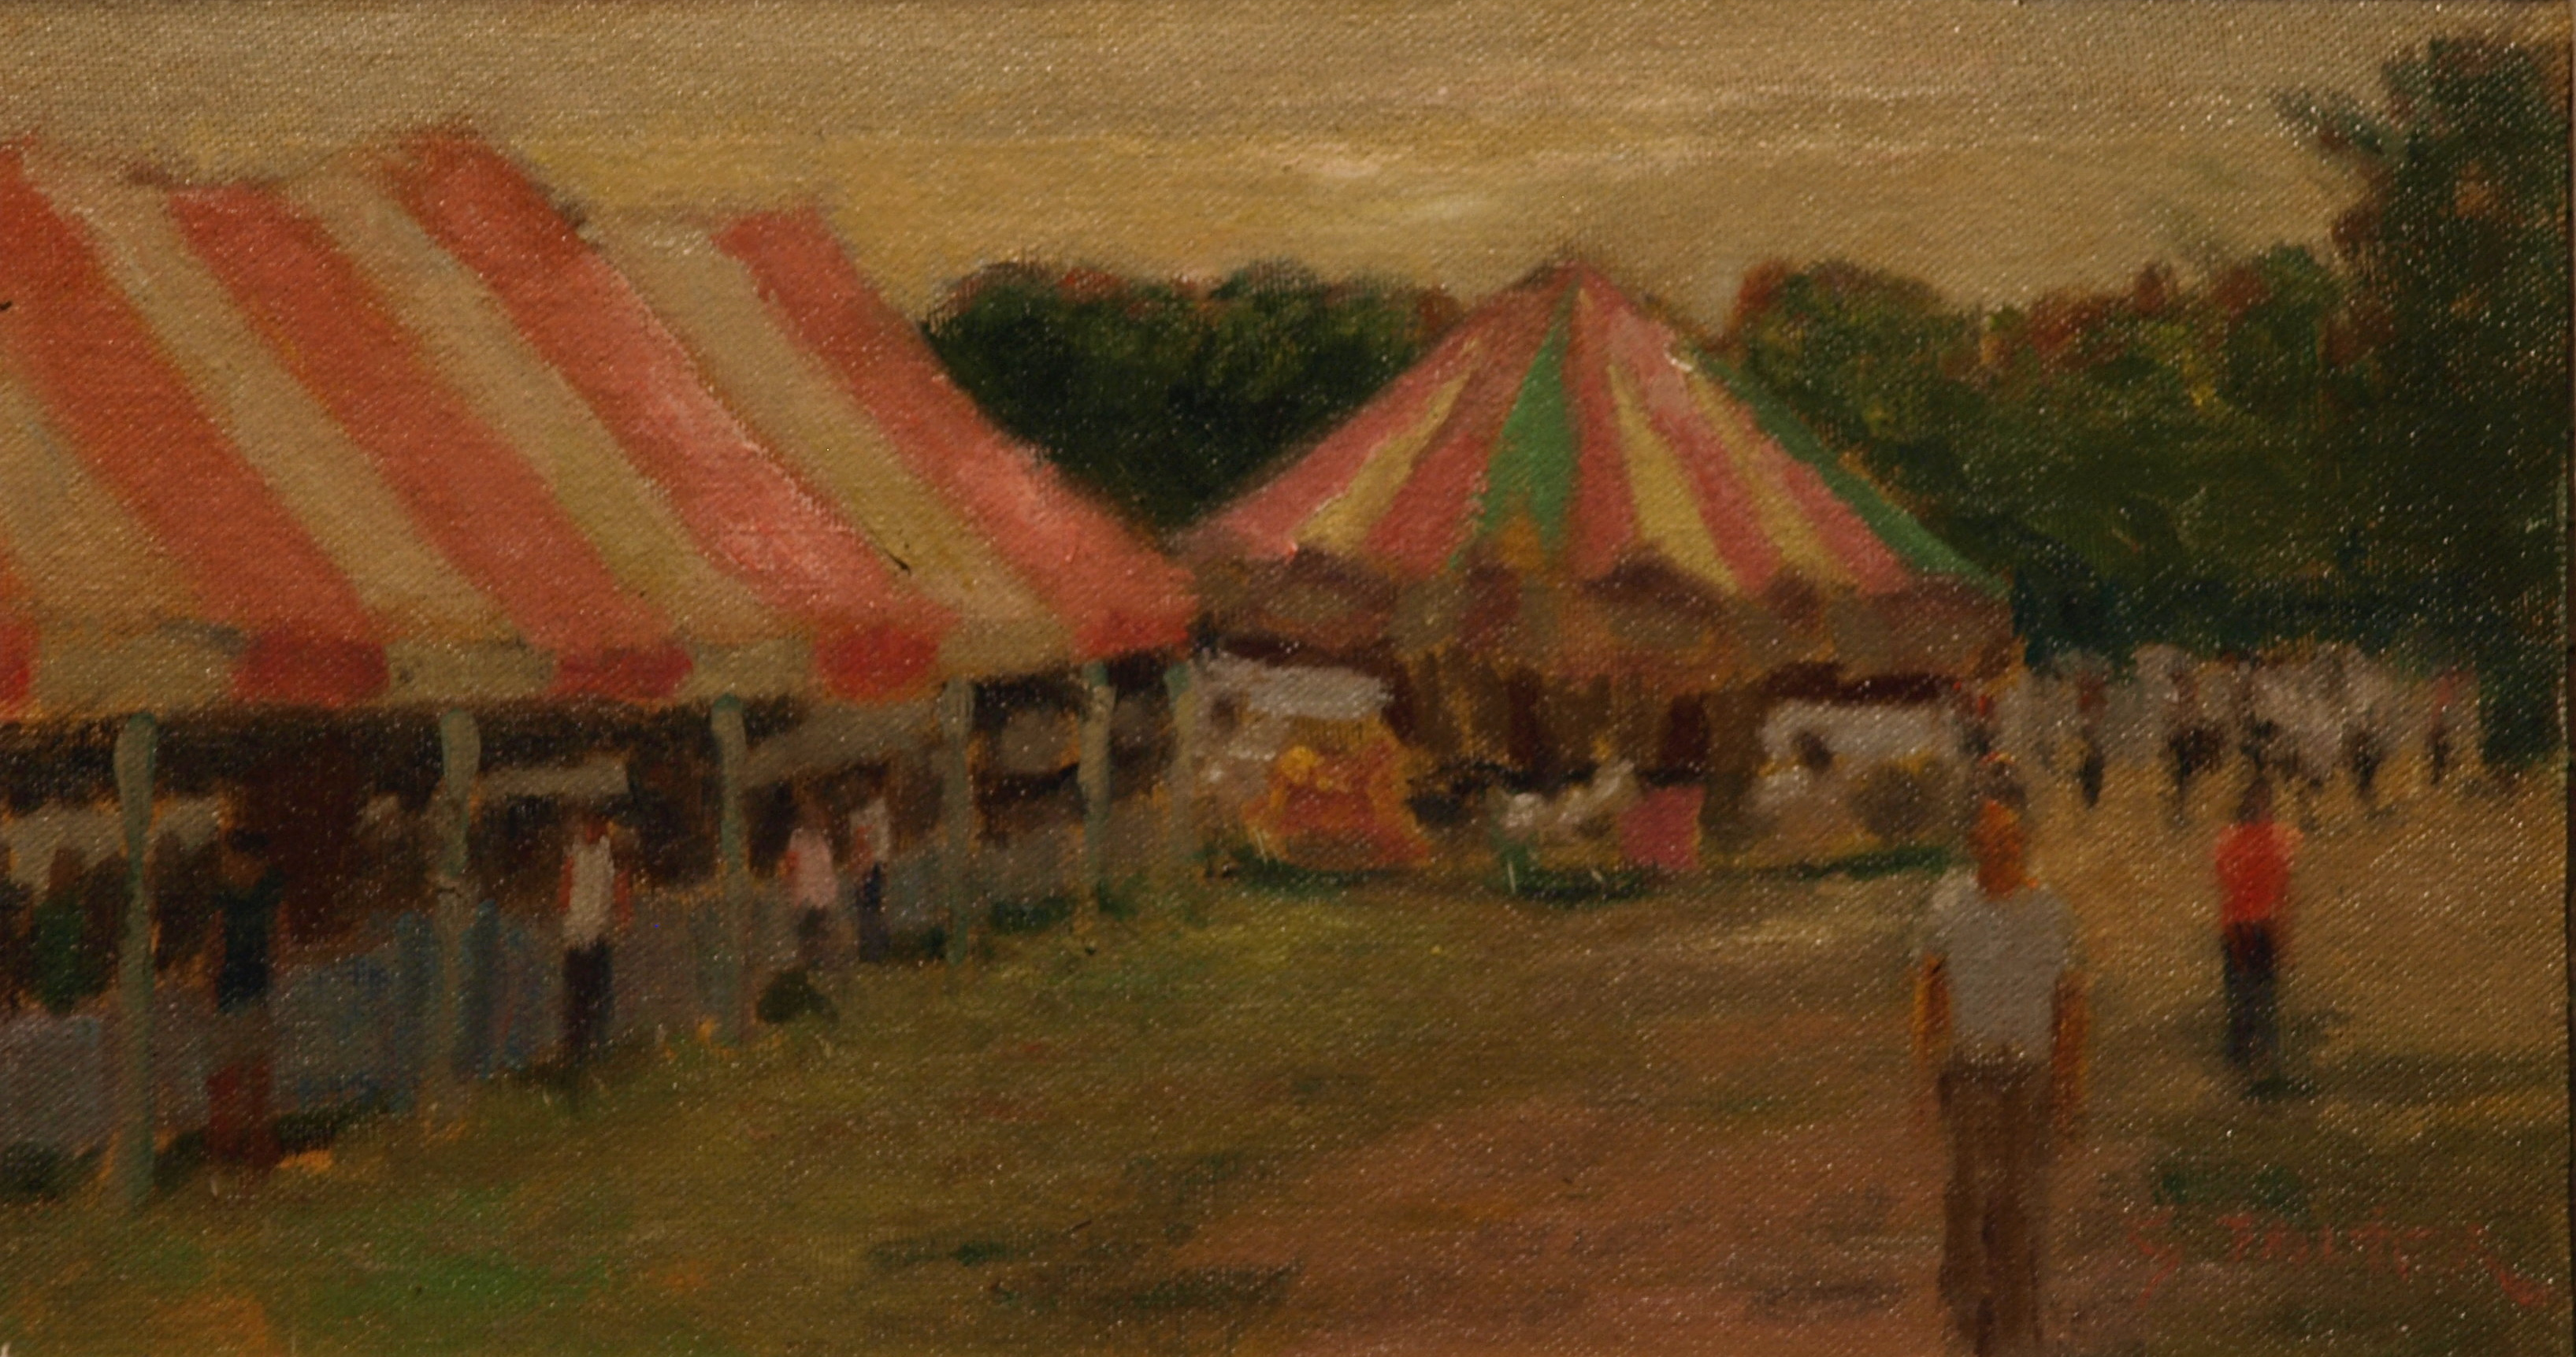 Merry-Go-Round, Oil on Canvas on Panel, 8 x 14 Inches, by Richard Stalter, $225